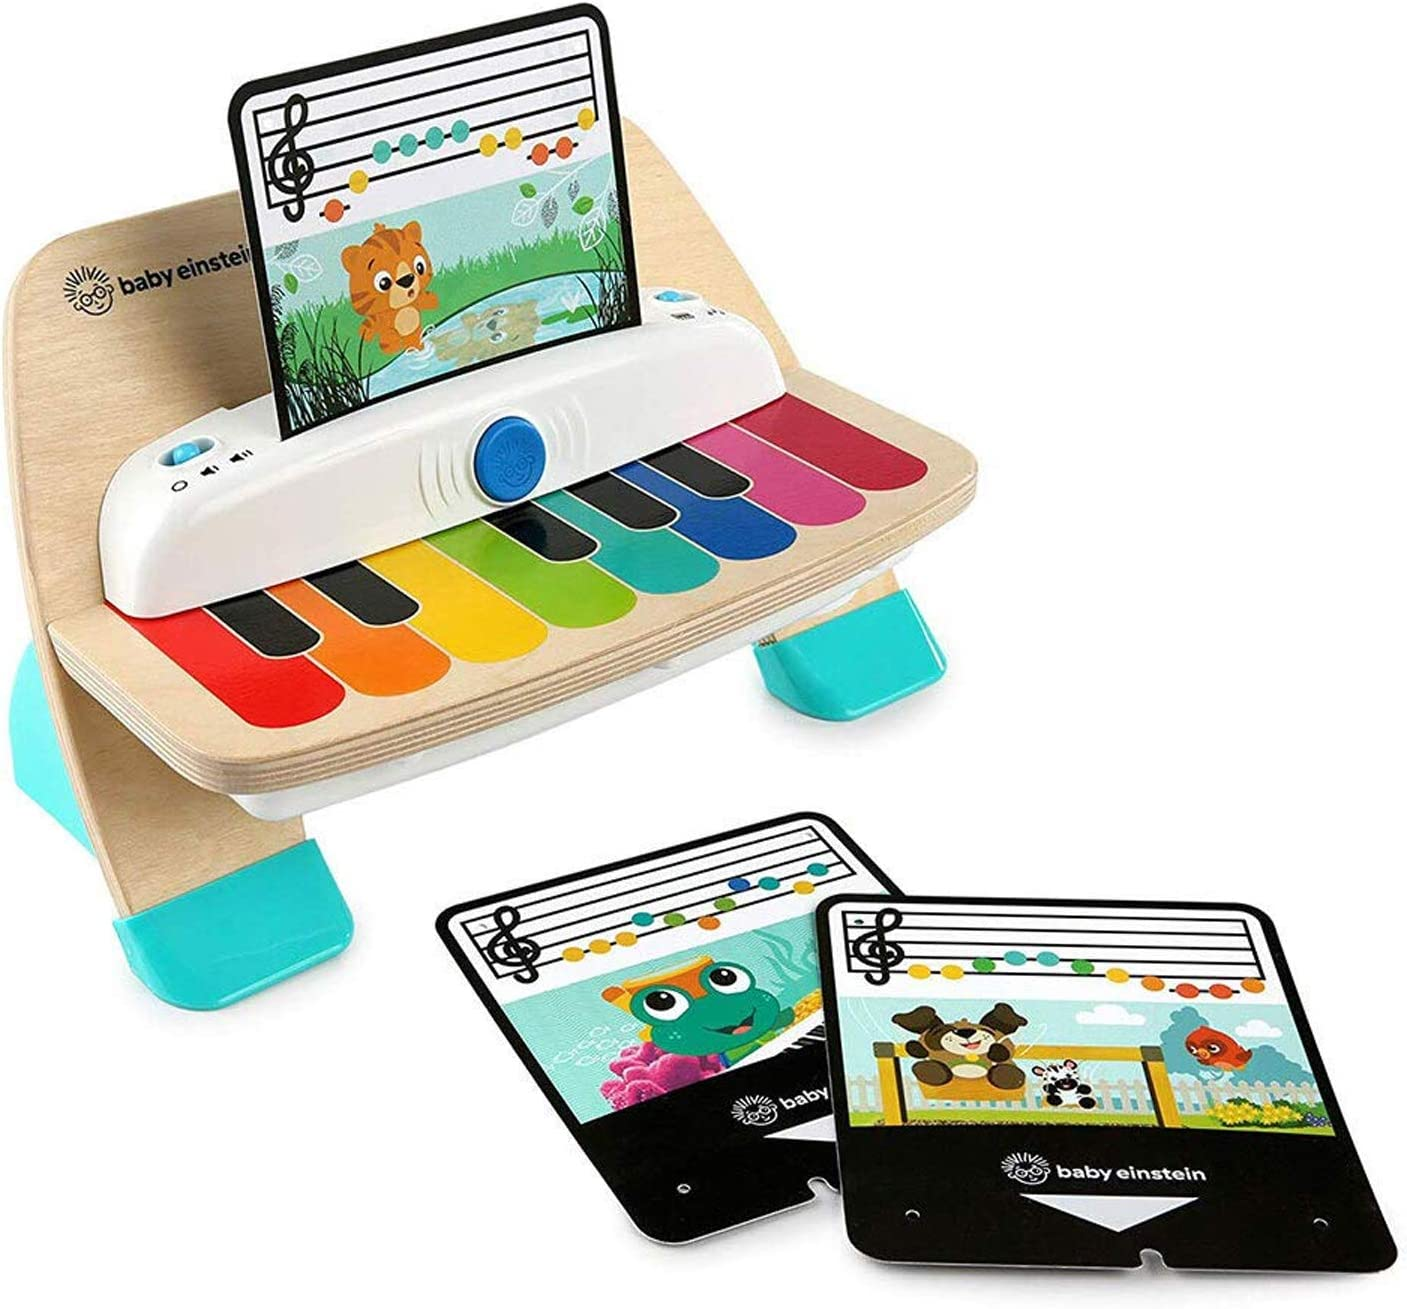 Baby Einstein Hape Magic Touch 6 Months and Up Toddler Baby 11-Key Wooden Piano Musical Play Toy